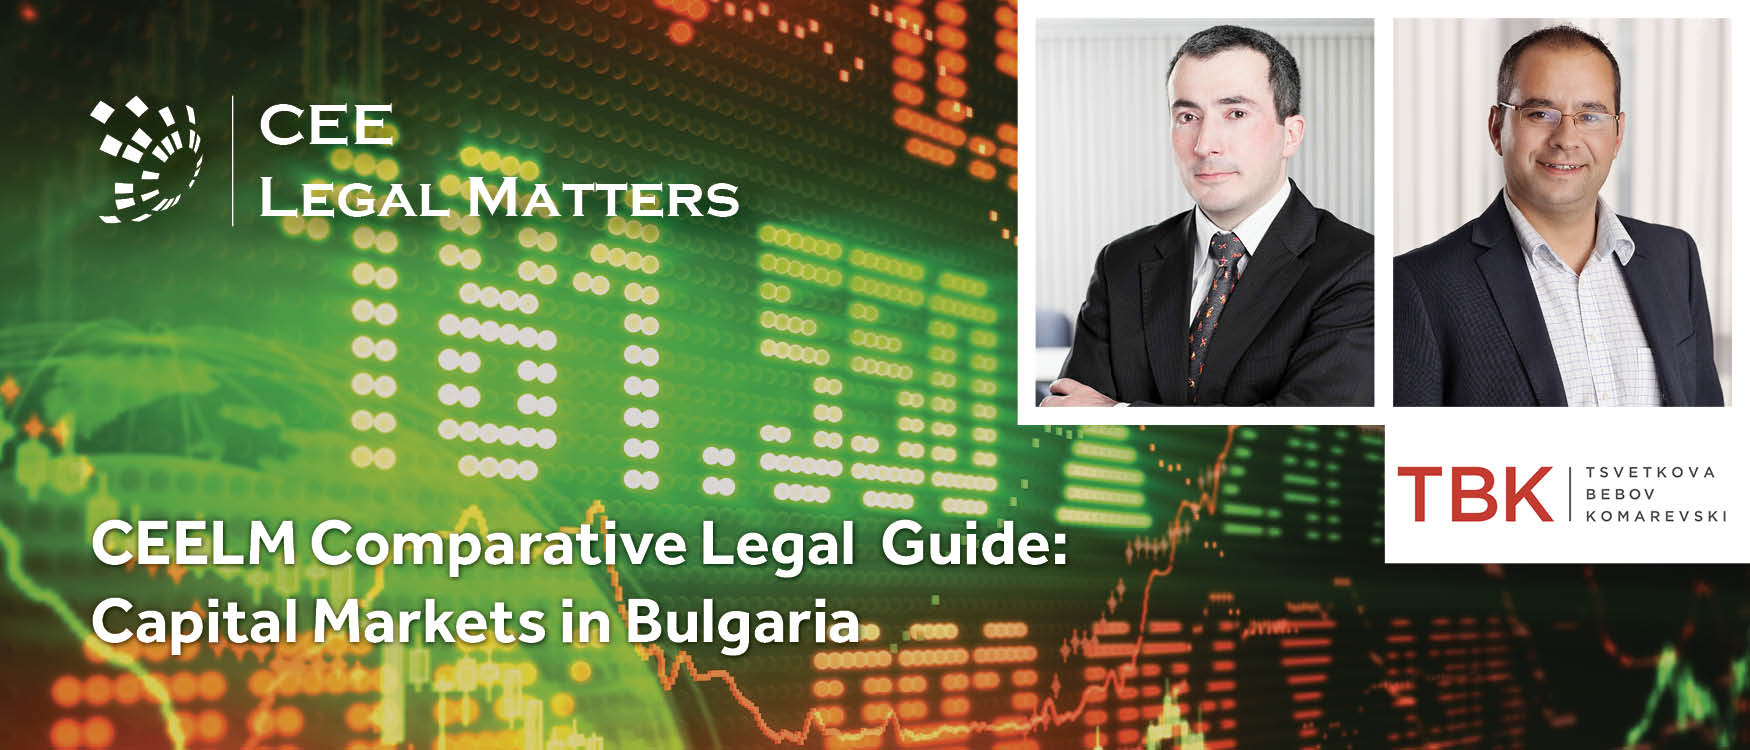 Capital Markets in Bulgaria